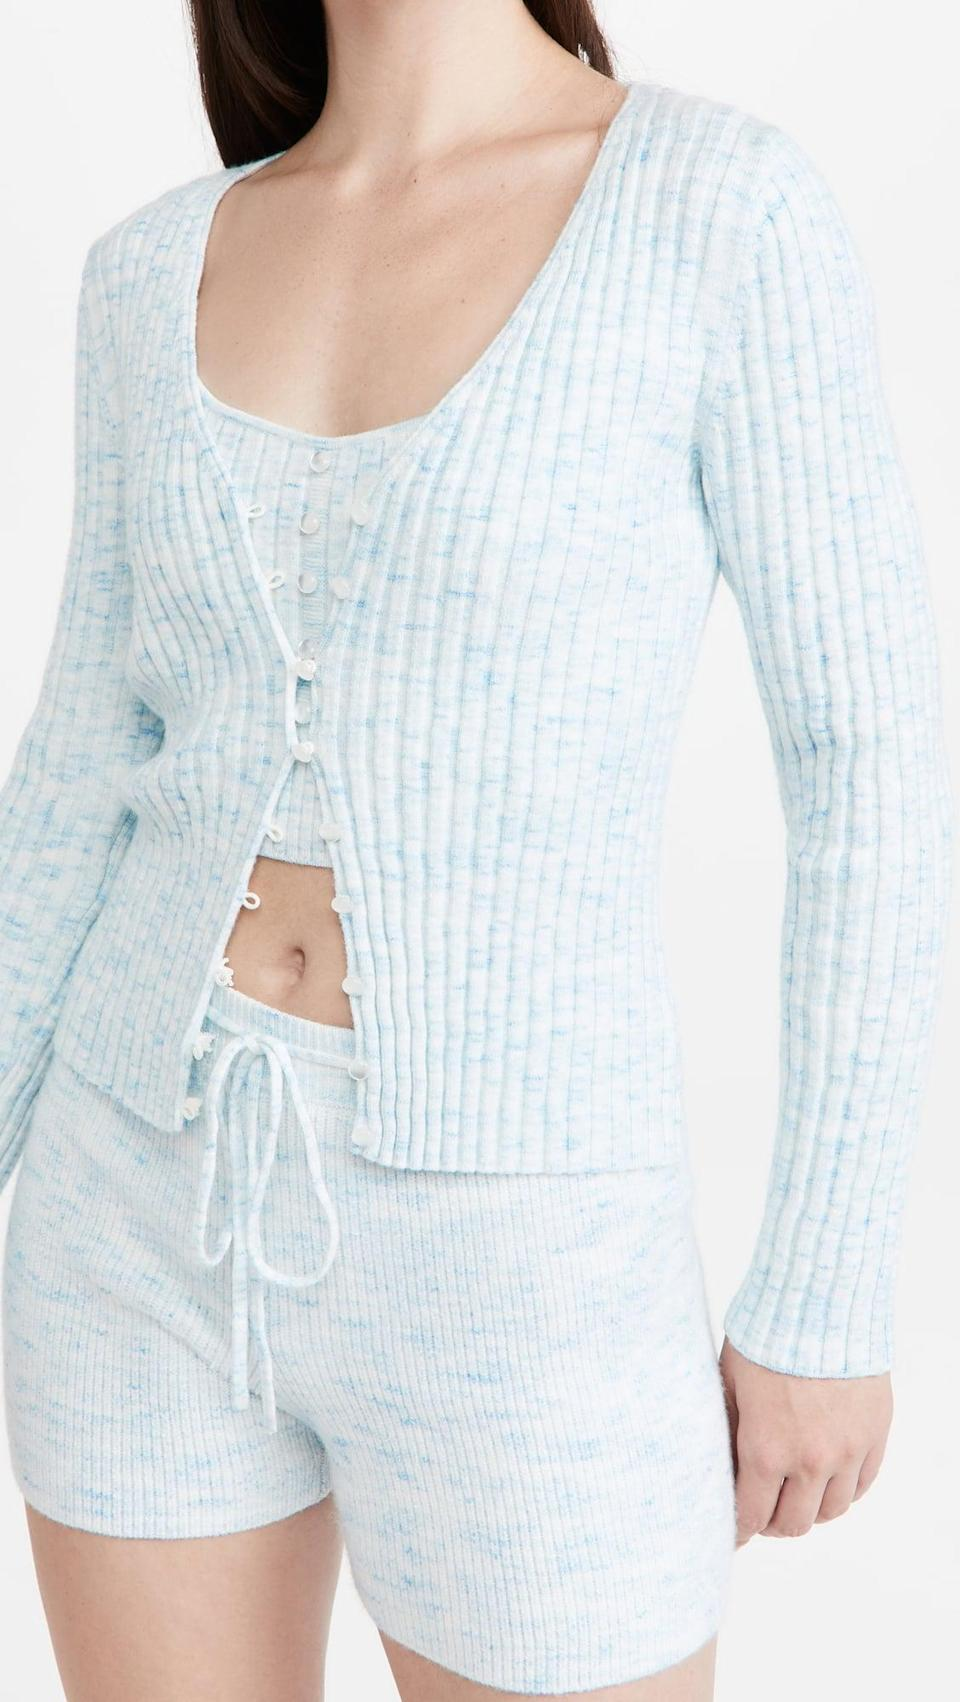 <p>When you want something that's both comfortable and body-hugging, turn to this <span>Wayf Frenchie Ribbed Cardigan</span> ($50, originally $99) and <span>Cami Top</span> ($33, originally $65). The light-blue ribbing looks charming and cute.</p>